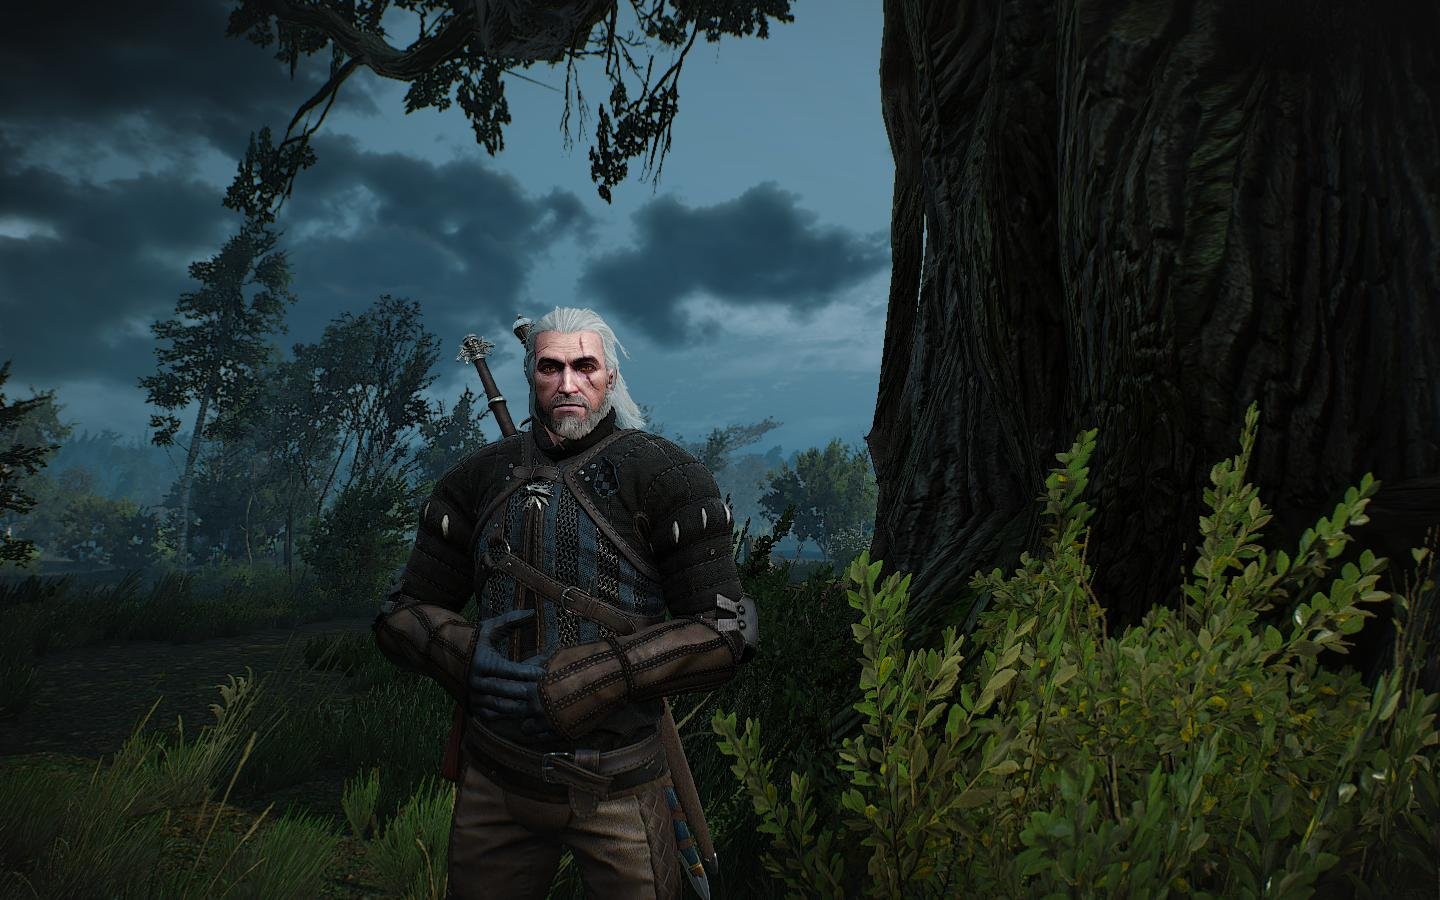 Геральт - Witcher 3: Wild Hunt, the